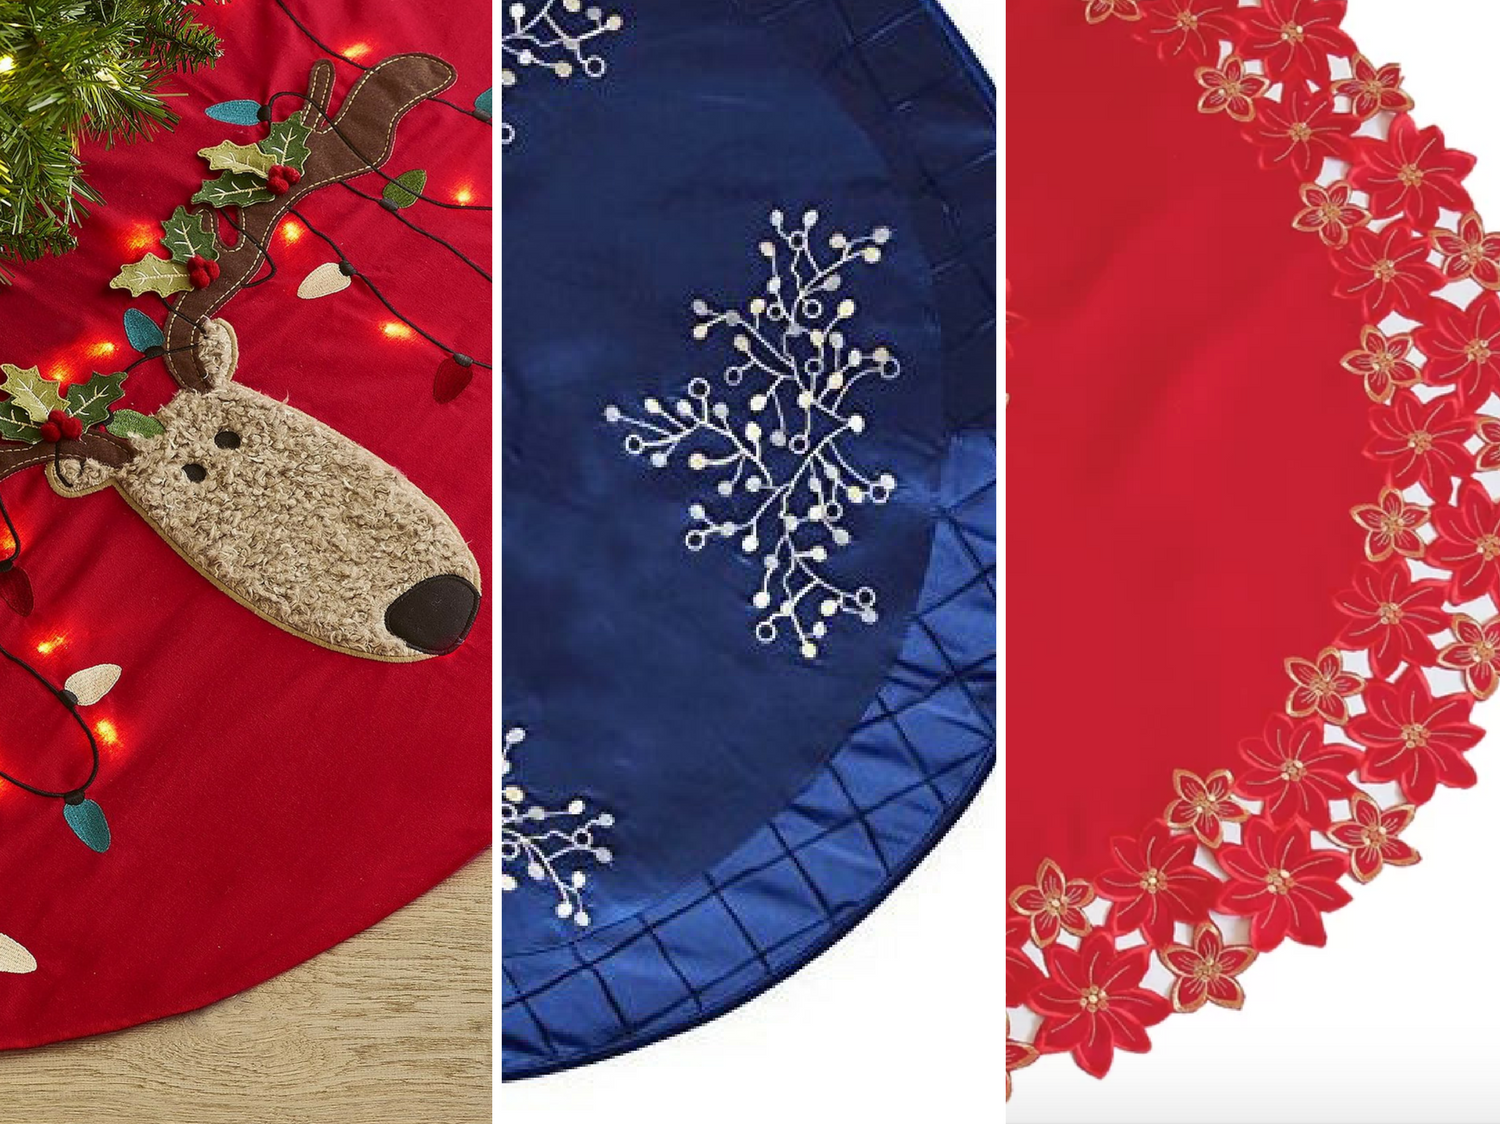 21 Beautiful Christmas Tree Skirts for Every Home and Decor Style